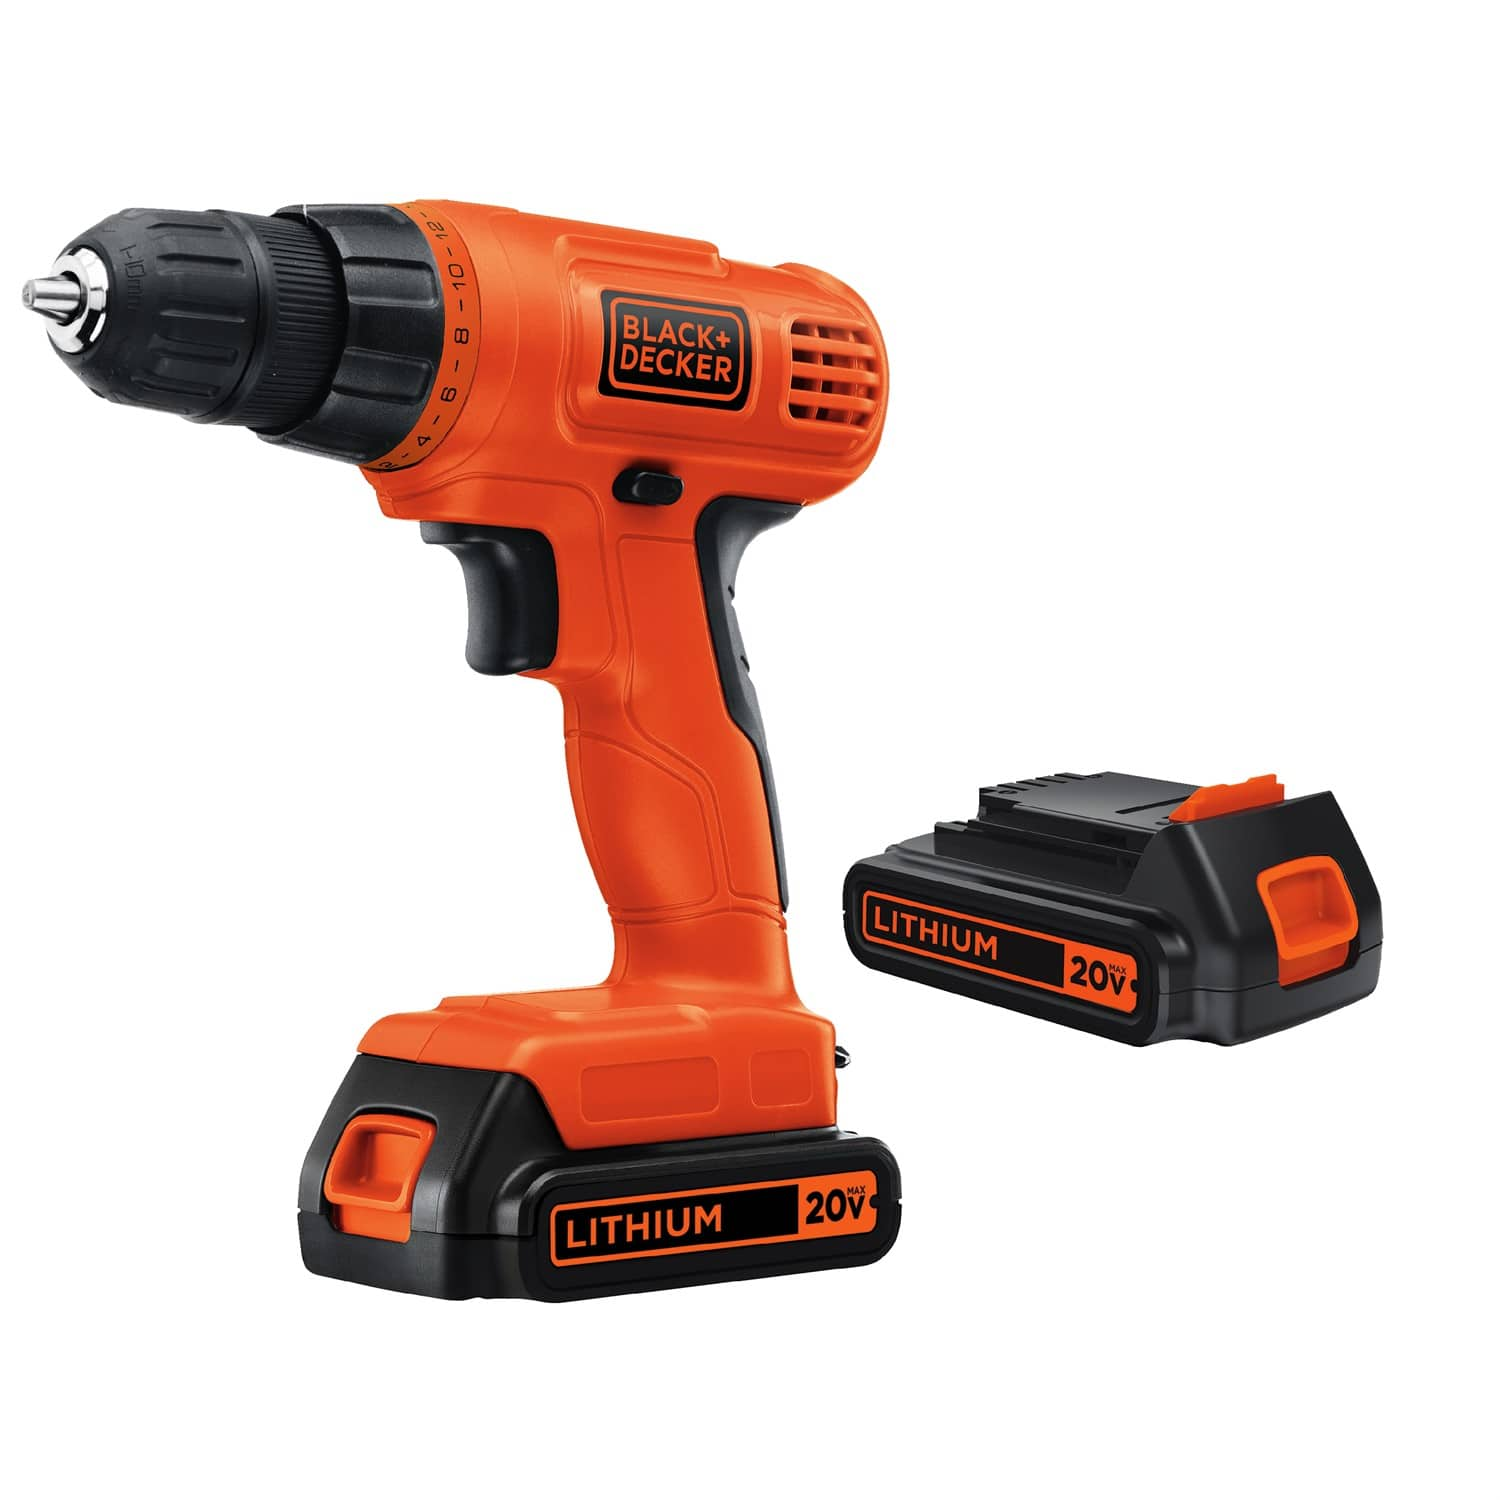 BLACK+DECKER 20-Volt MAX Lithium Ion Cordless Drill with 2 Batteries for $40 @ Walmart